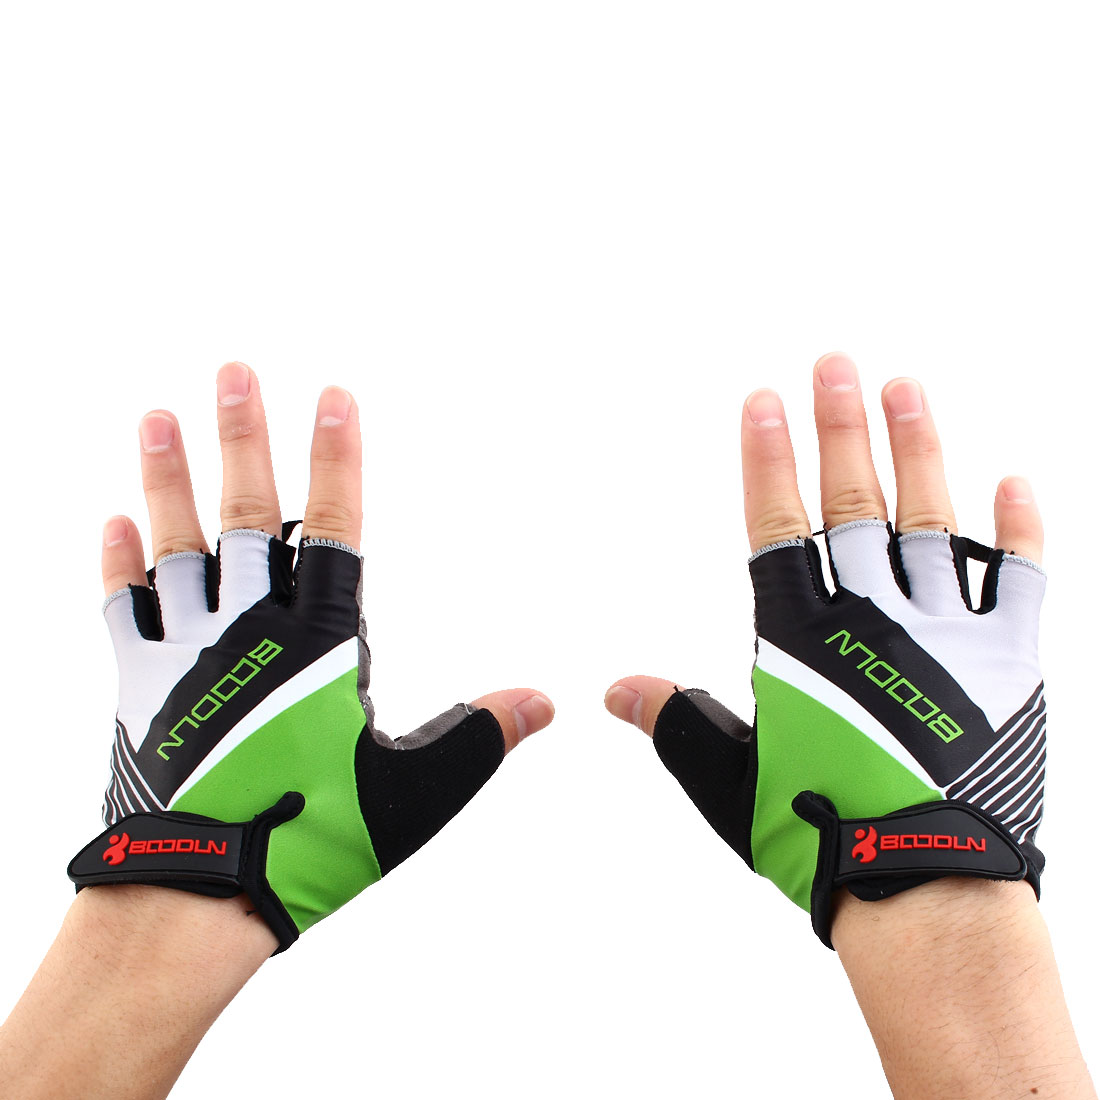 BOODUN Authorized Unisex Exercise Sports Cycling Fitness Half Finger Palm Support Gloves Green Size L Pair